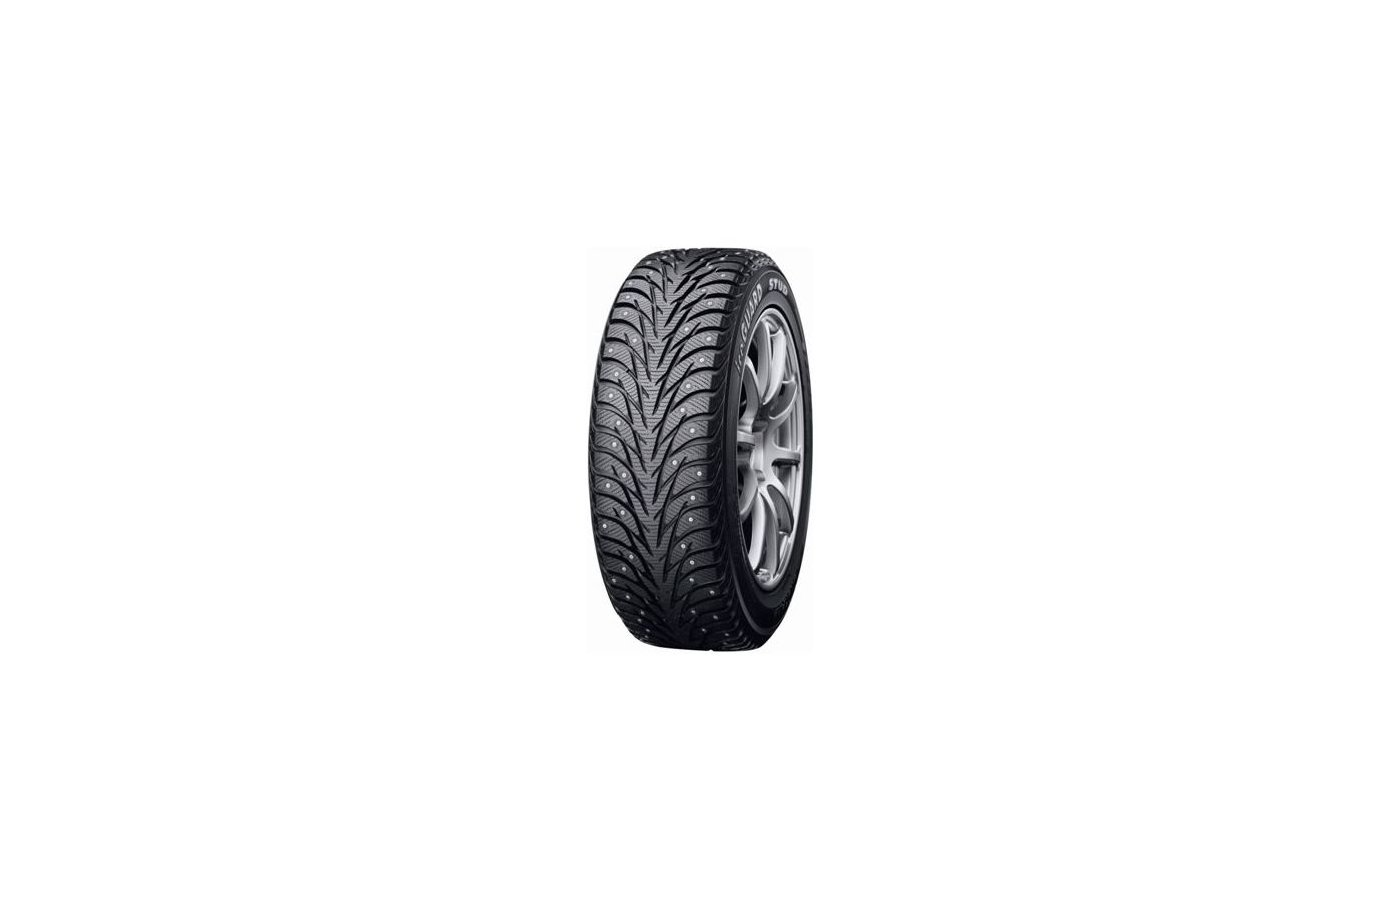 Шина Yokohama Ice Guard IG35 Plus 225/40 R18 TL 92T шип